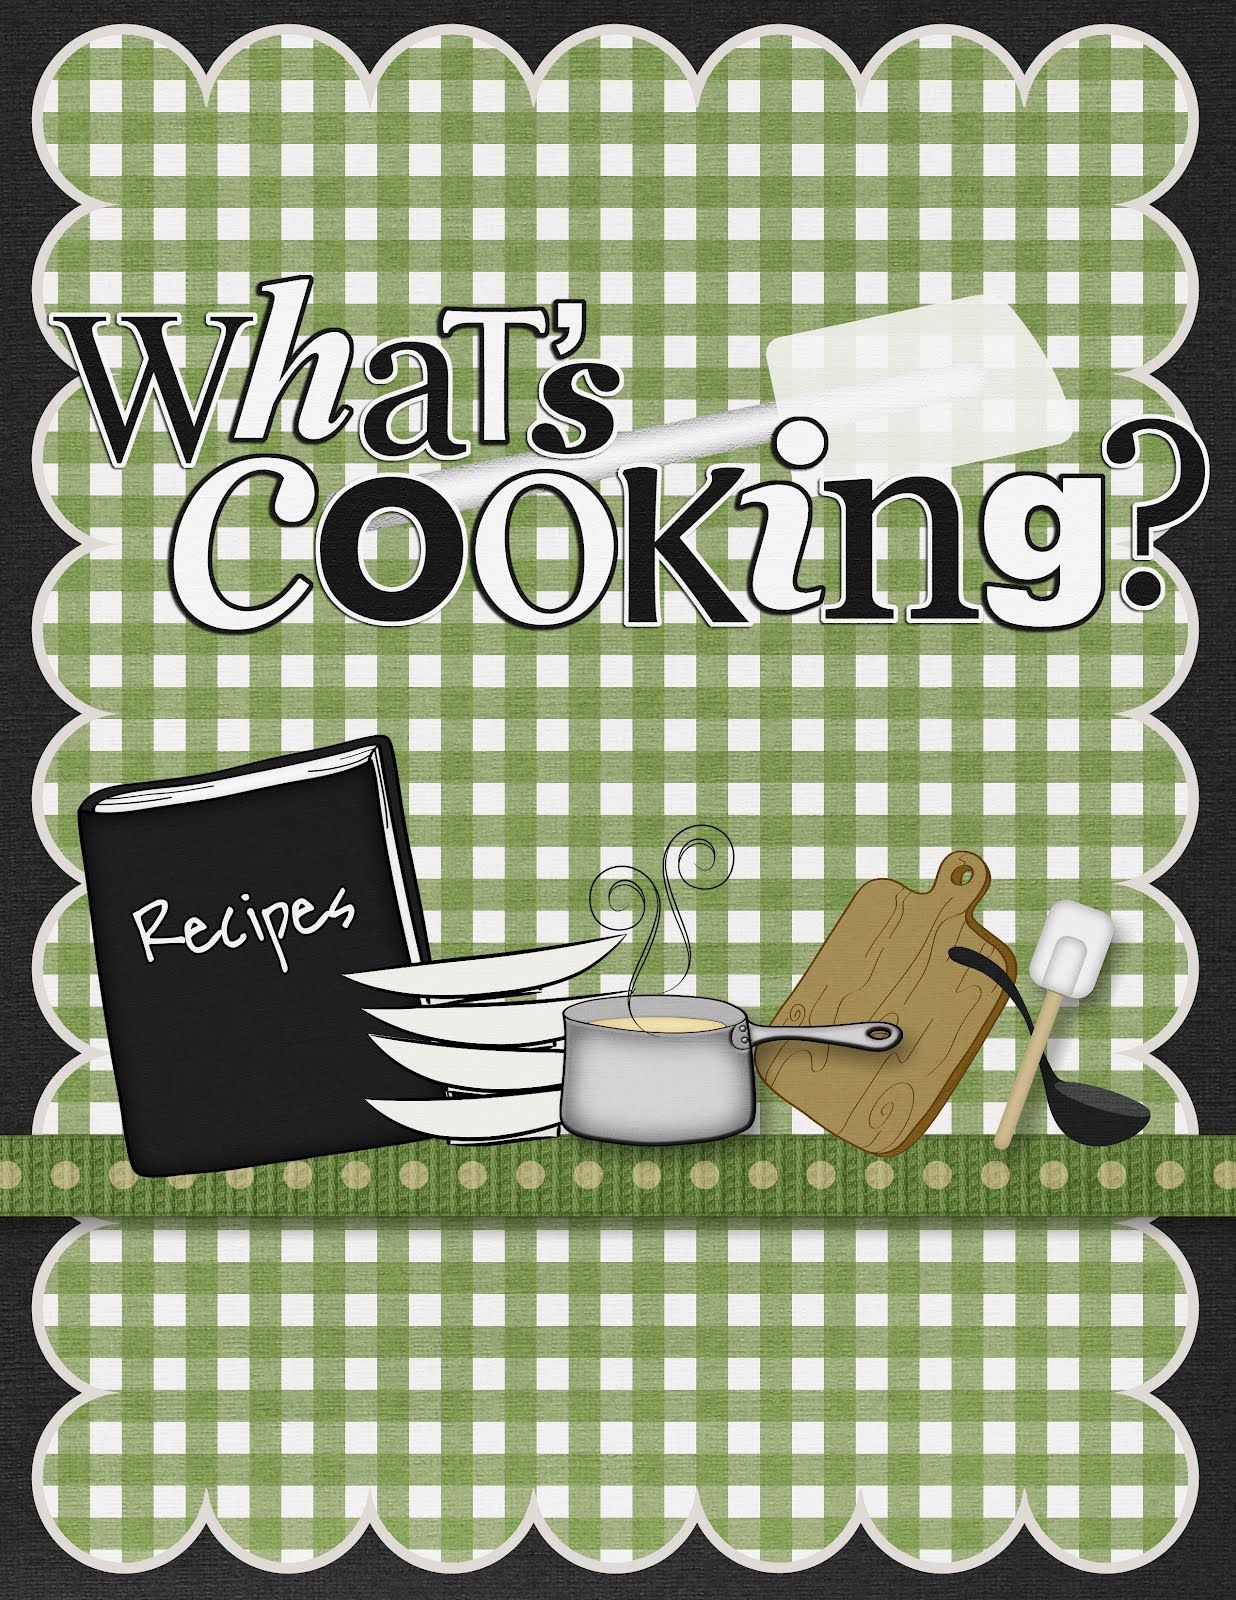 Cookbook Front Cover Design : Cook book scrapbook cover pin if you like it books